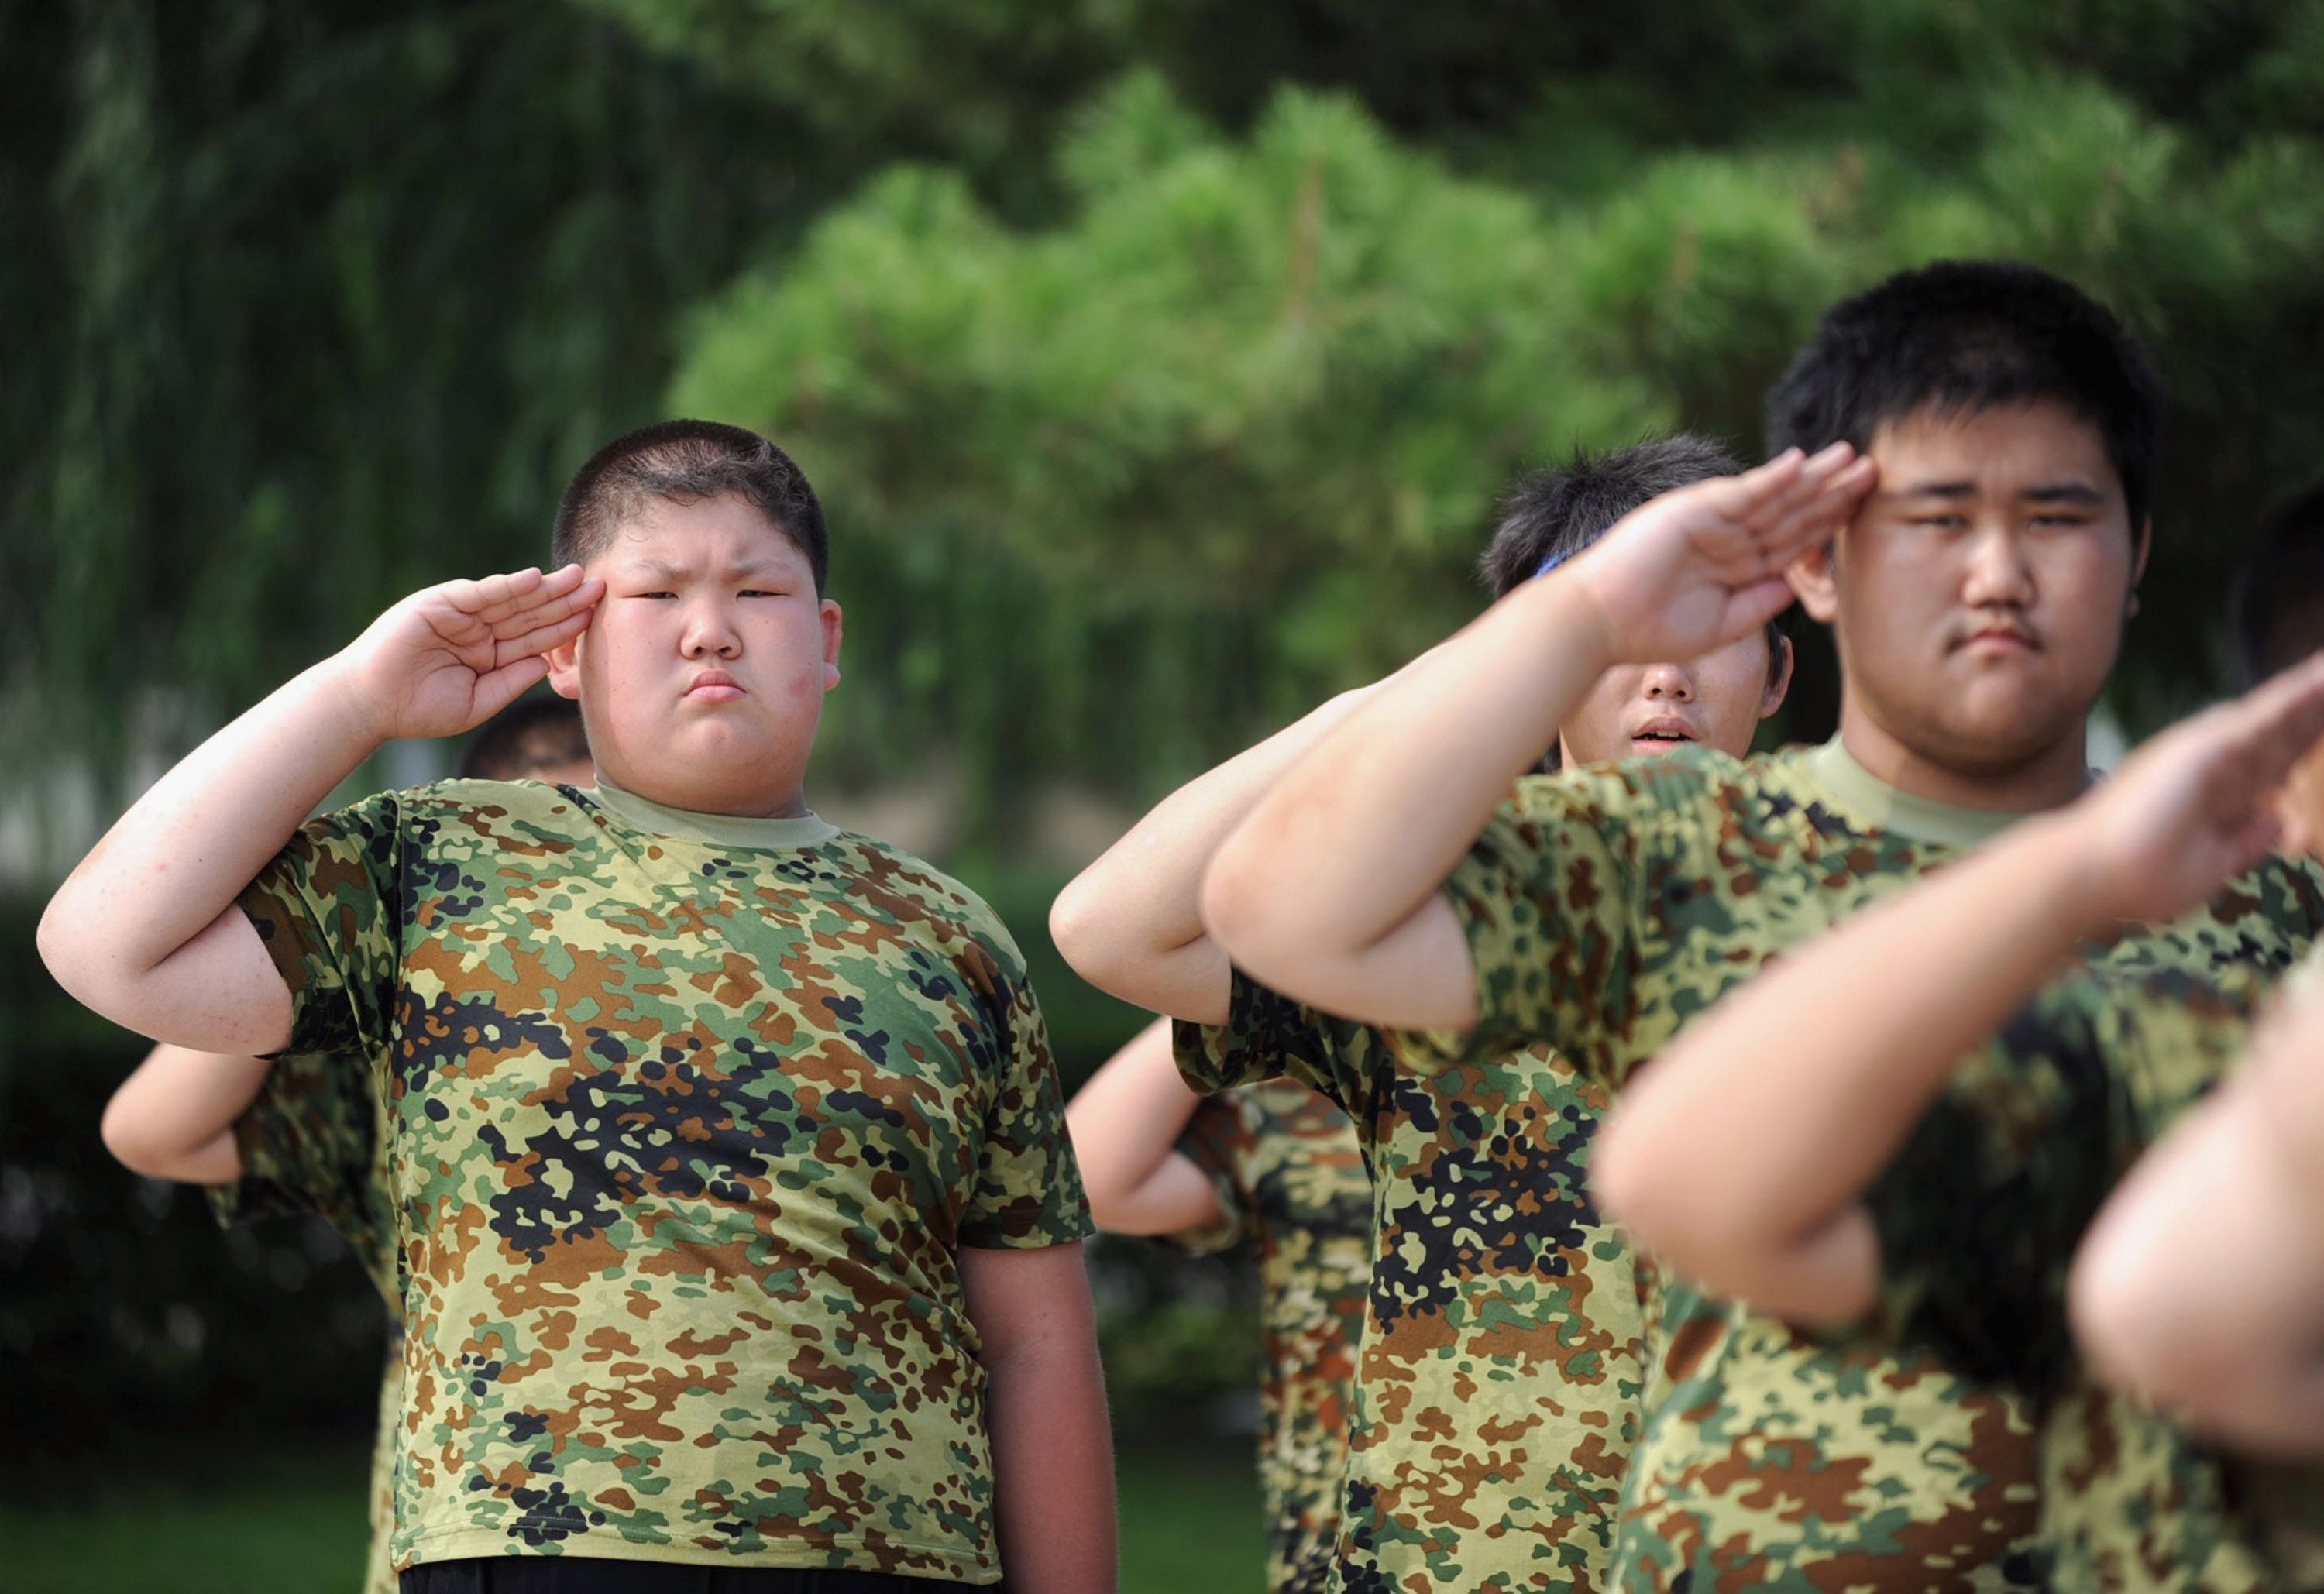 Overweight students attend military training during a weight-loss summer camp on July 30, 2009 in Shenyang of Liaoning Province, China.